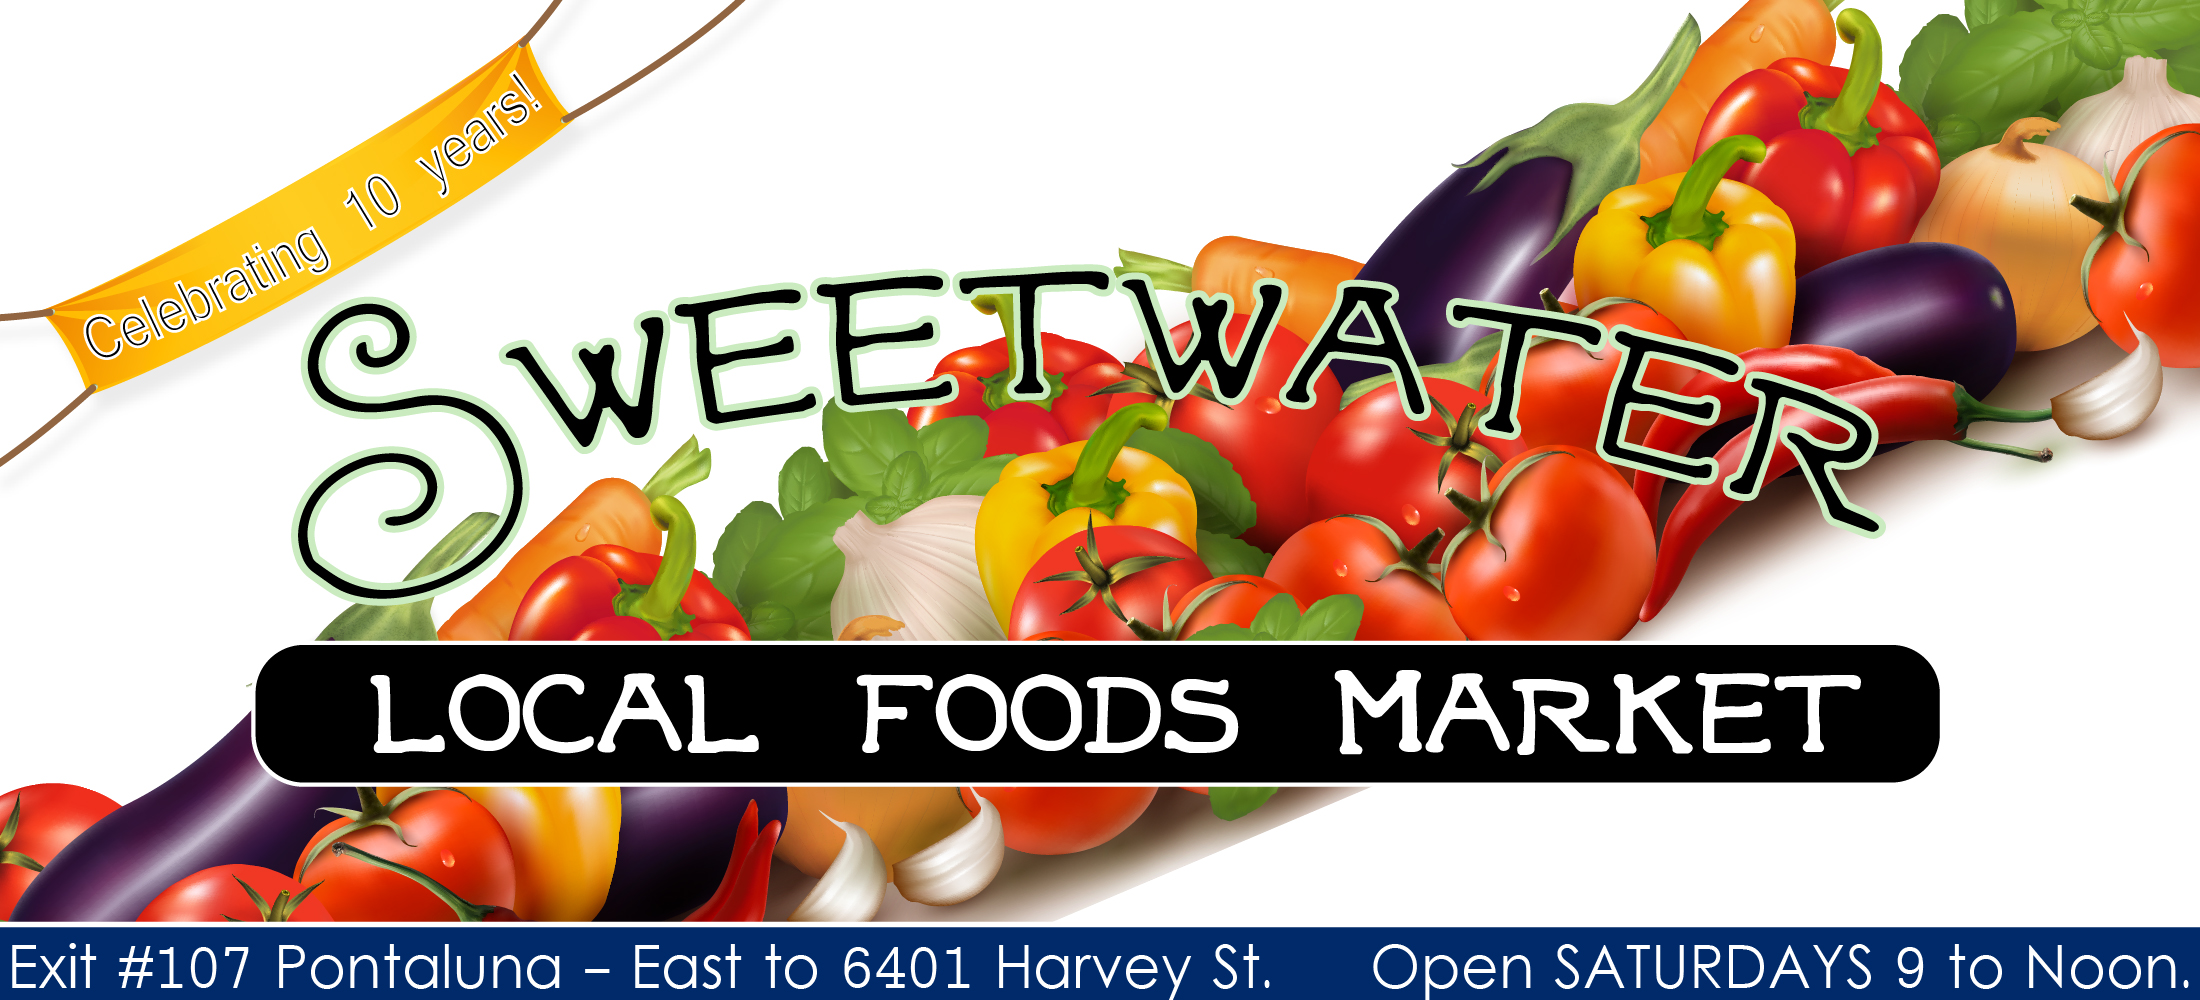 Sweetwater Local Foods Market